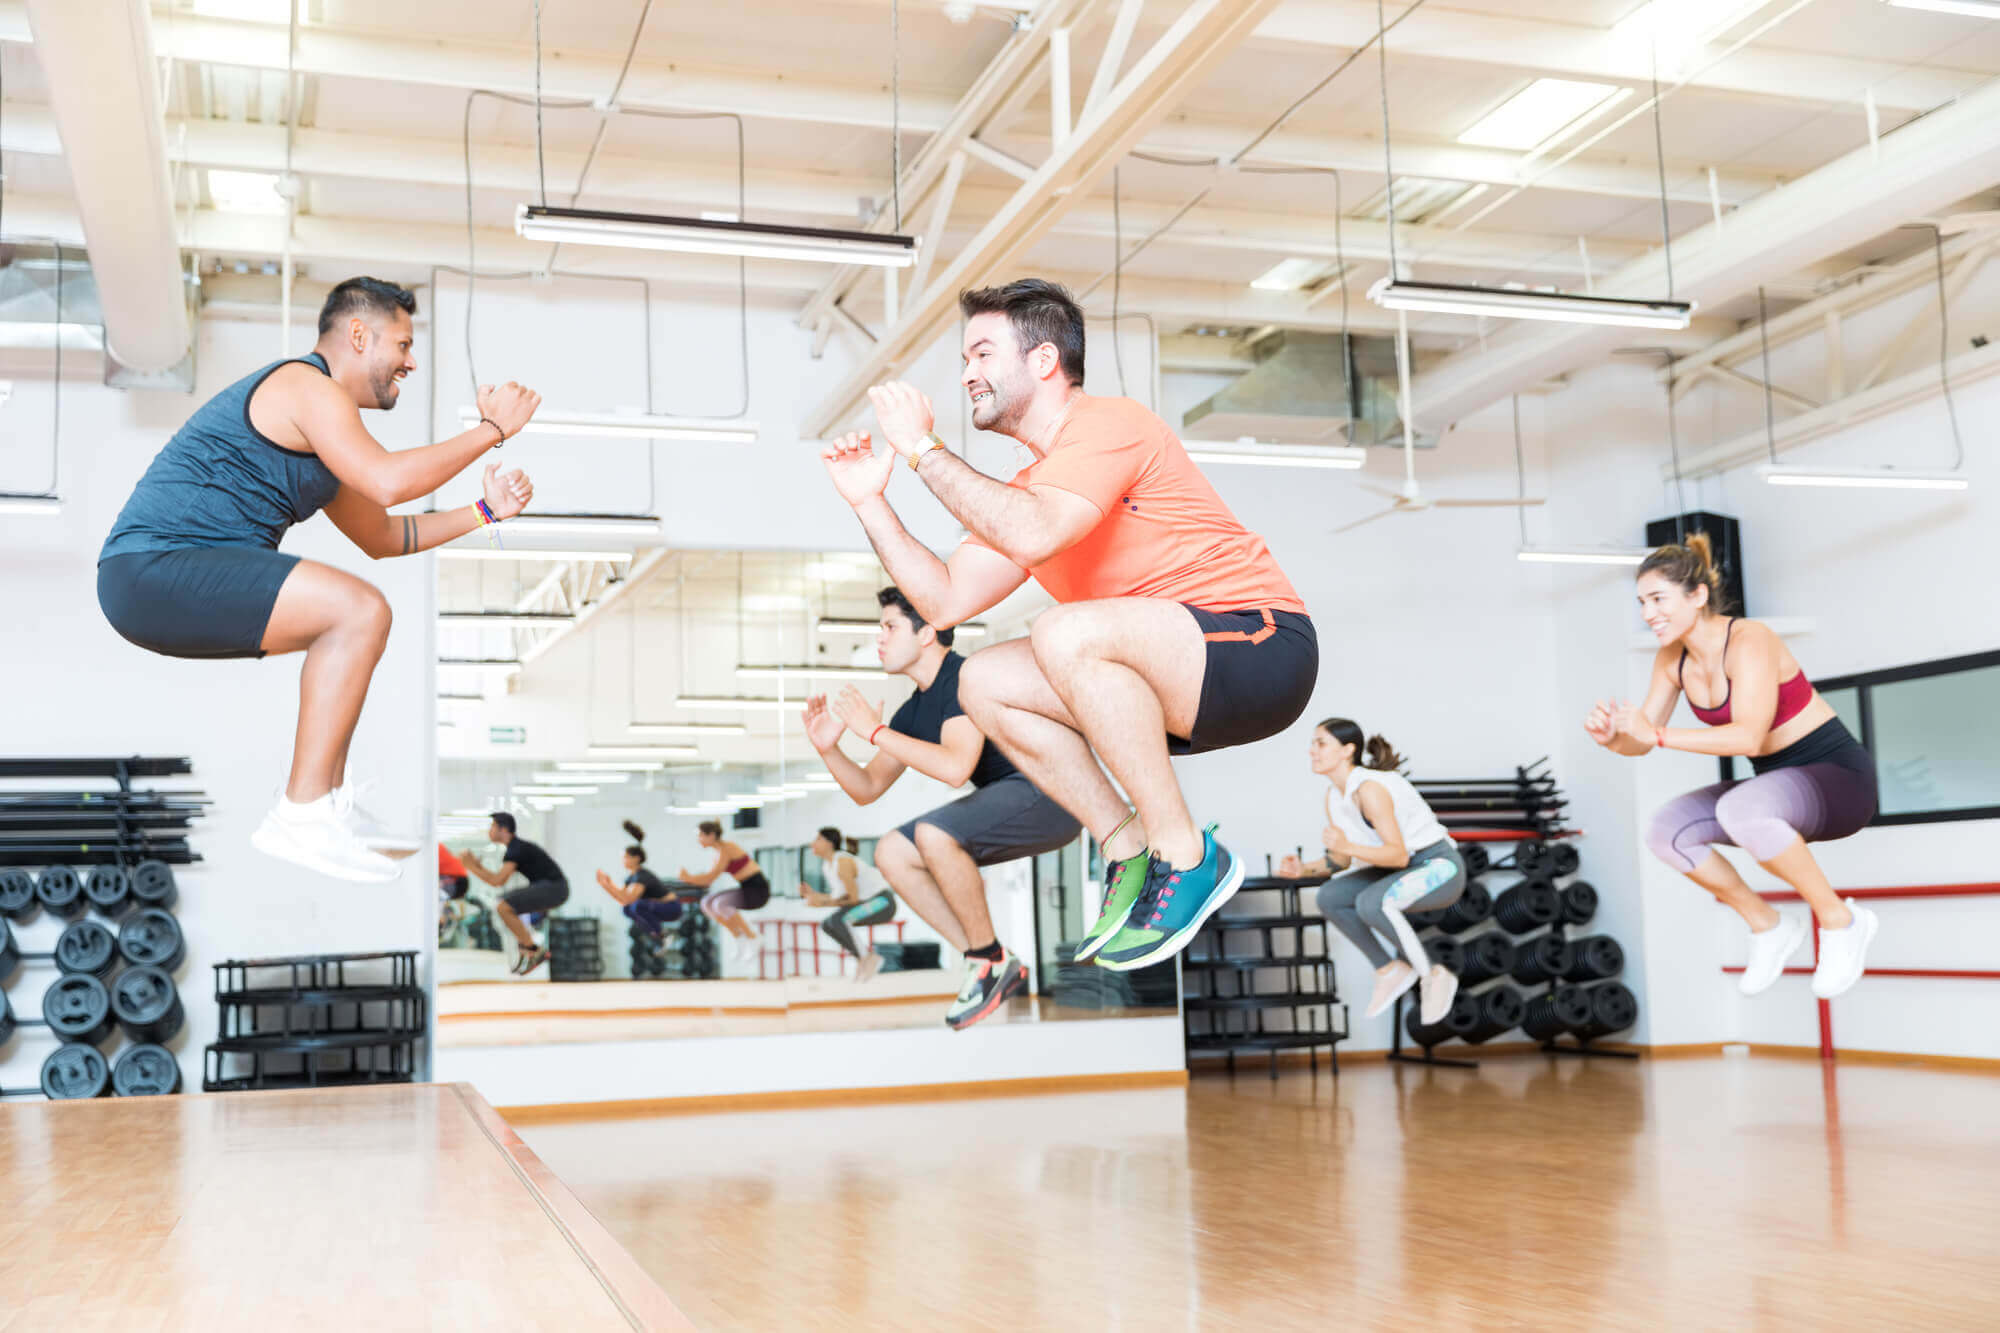 jump - 7 best workouts for men